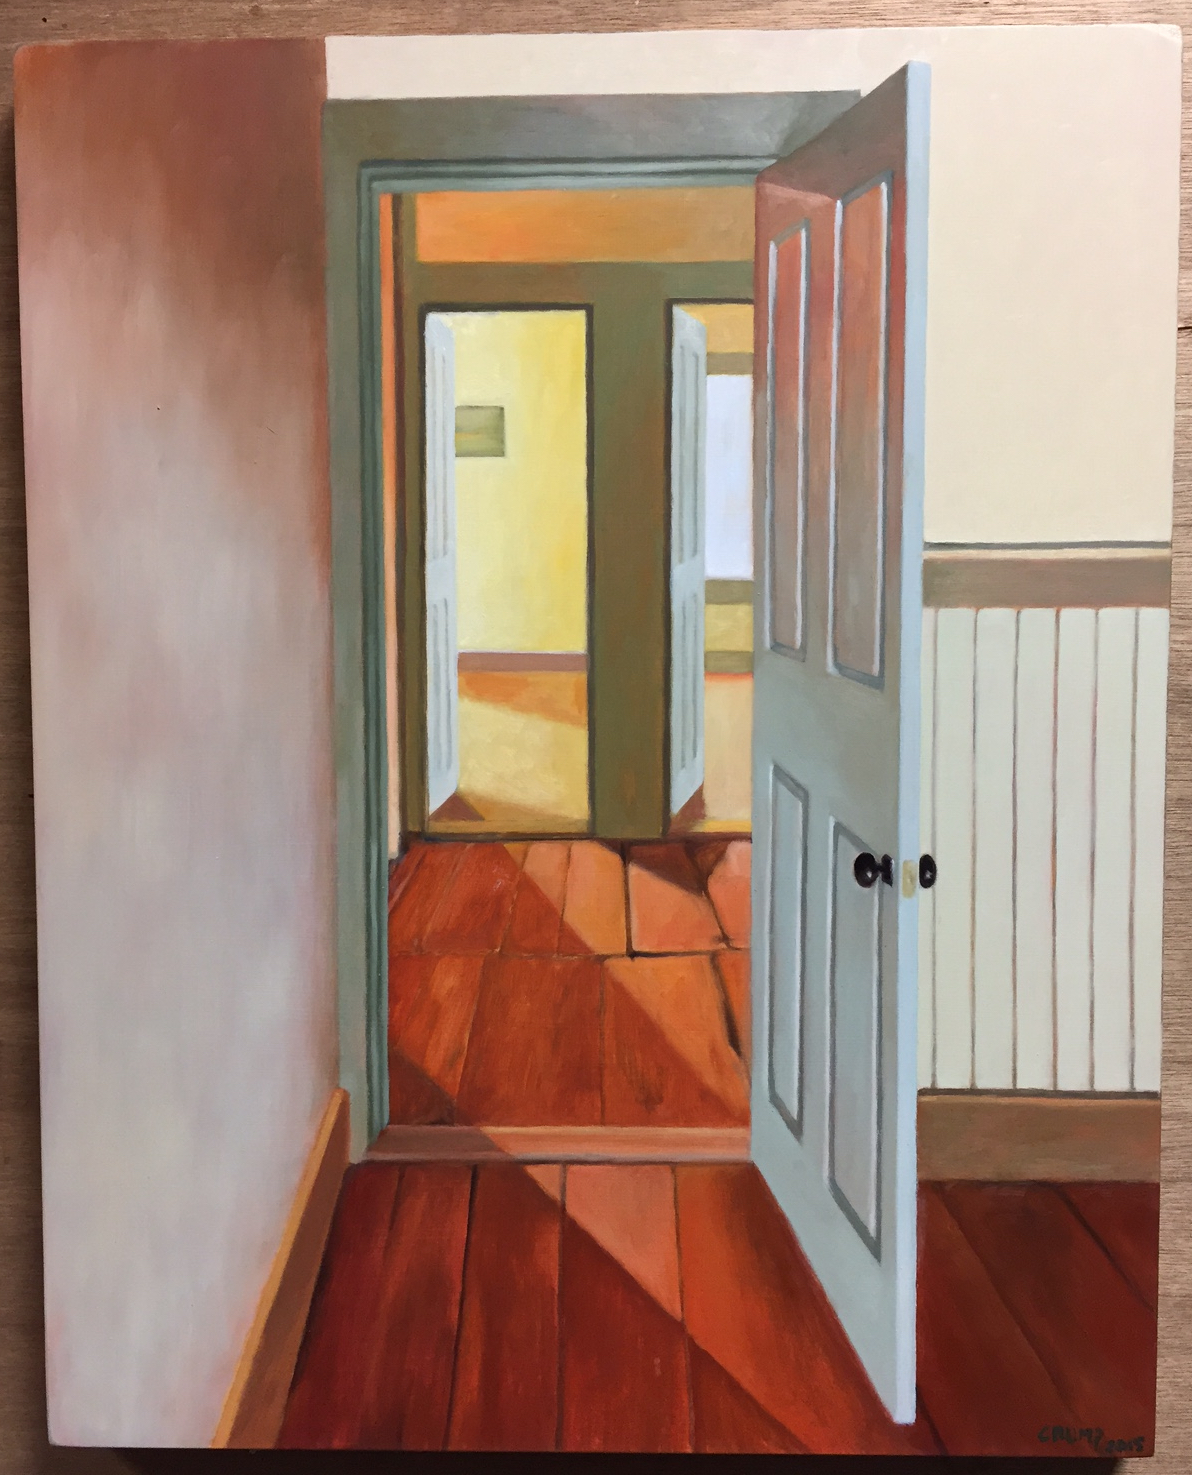 Title Three Doors Date 2015. Culture American Dimensions 20×16\u2033 Materials Oil on panel. Credit Gift of the artist in honor of the Class of 1967 & Three Doors - Wheaton College Massachusetts